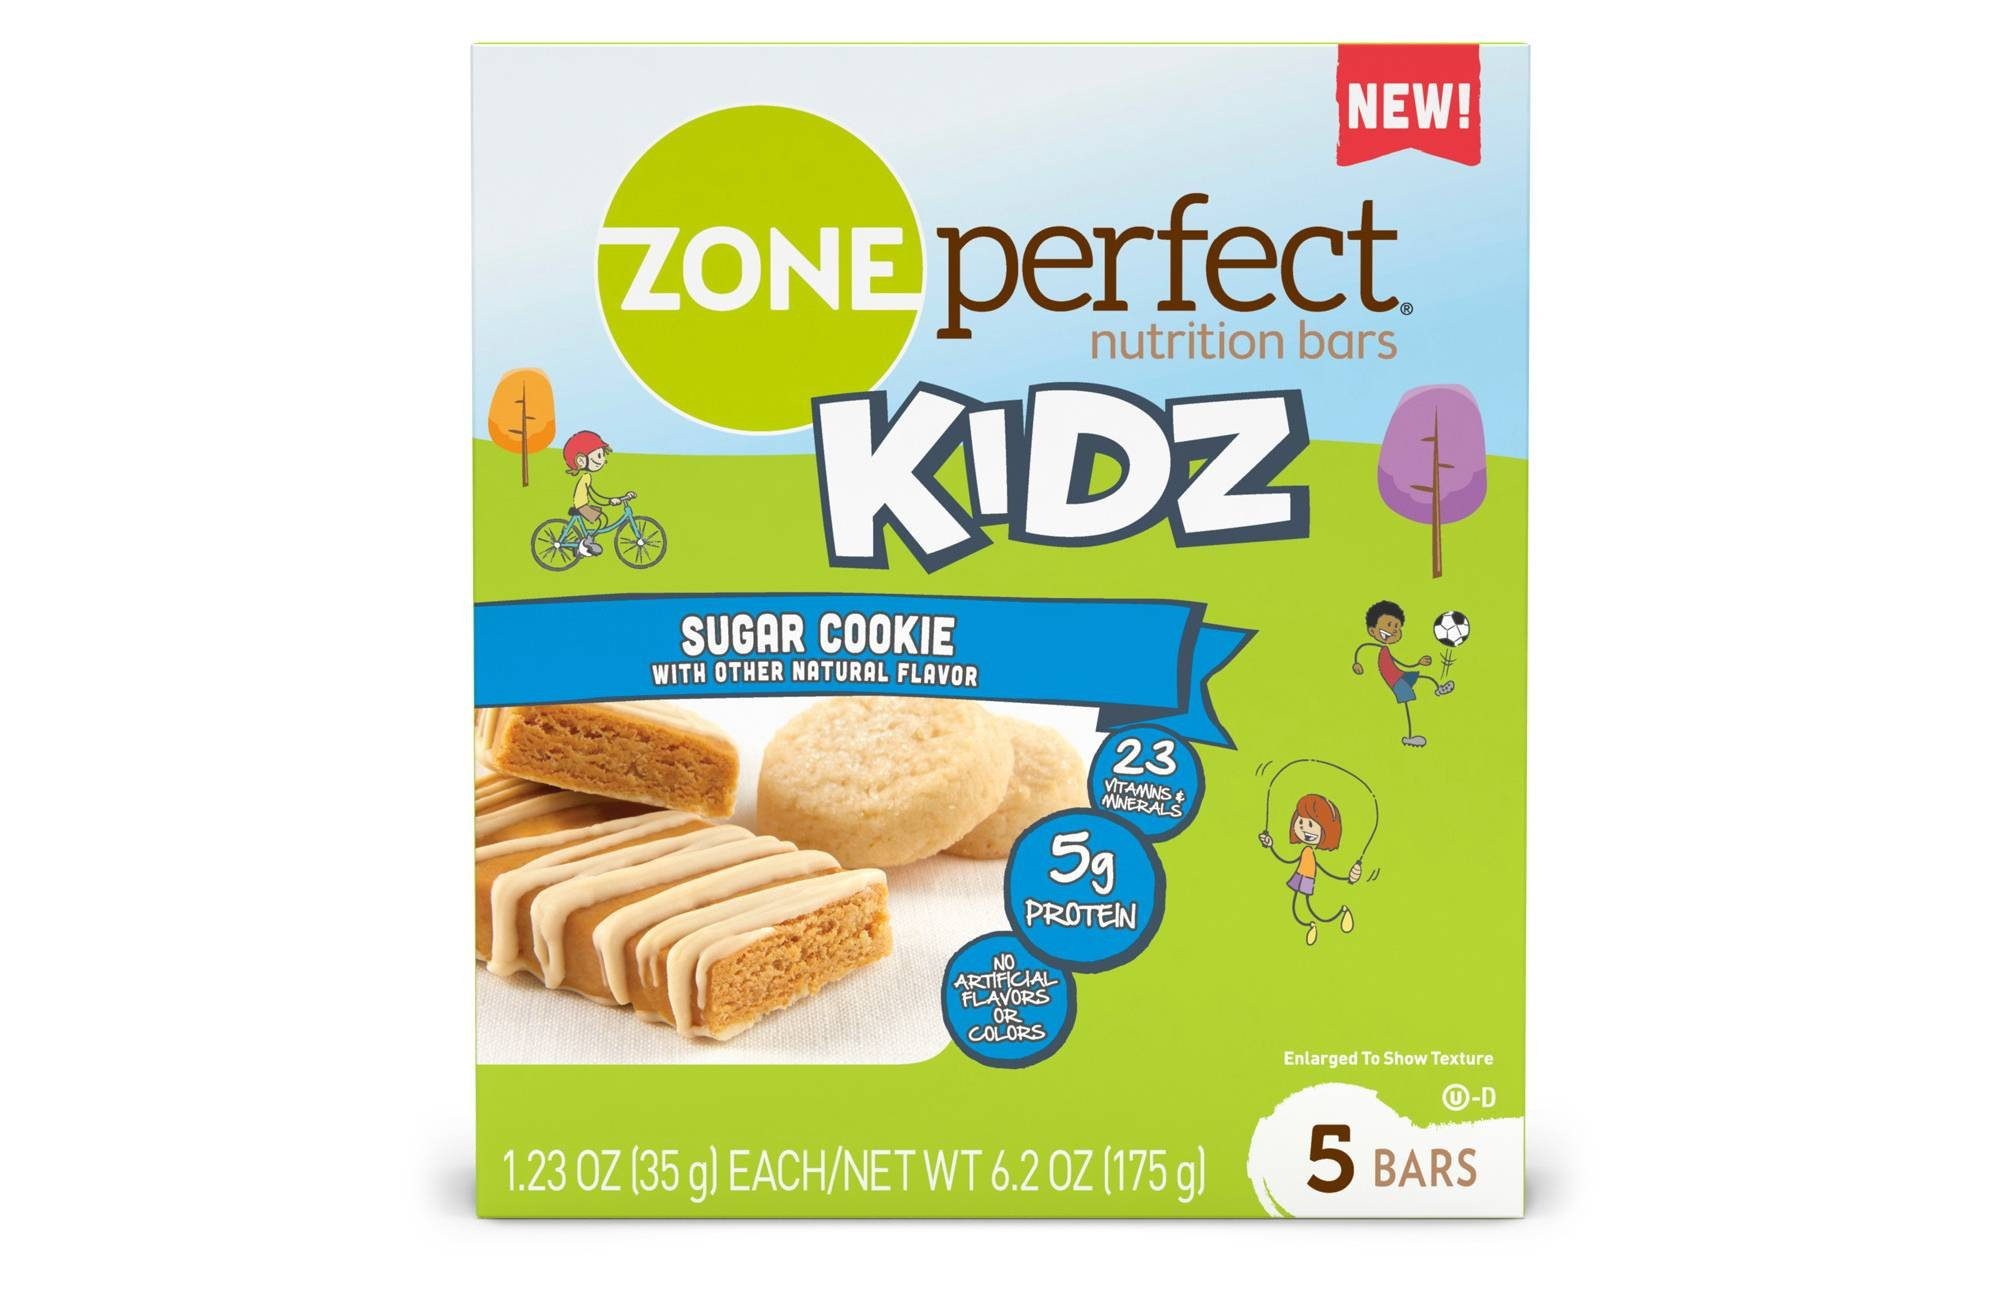 Zone Perfect Kids Sugar Cookie Nutrition Bars 1.23ozx 5 bars(total 6.15oz)